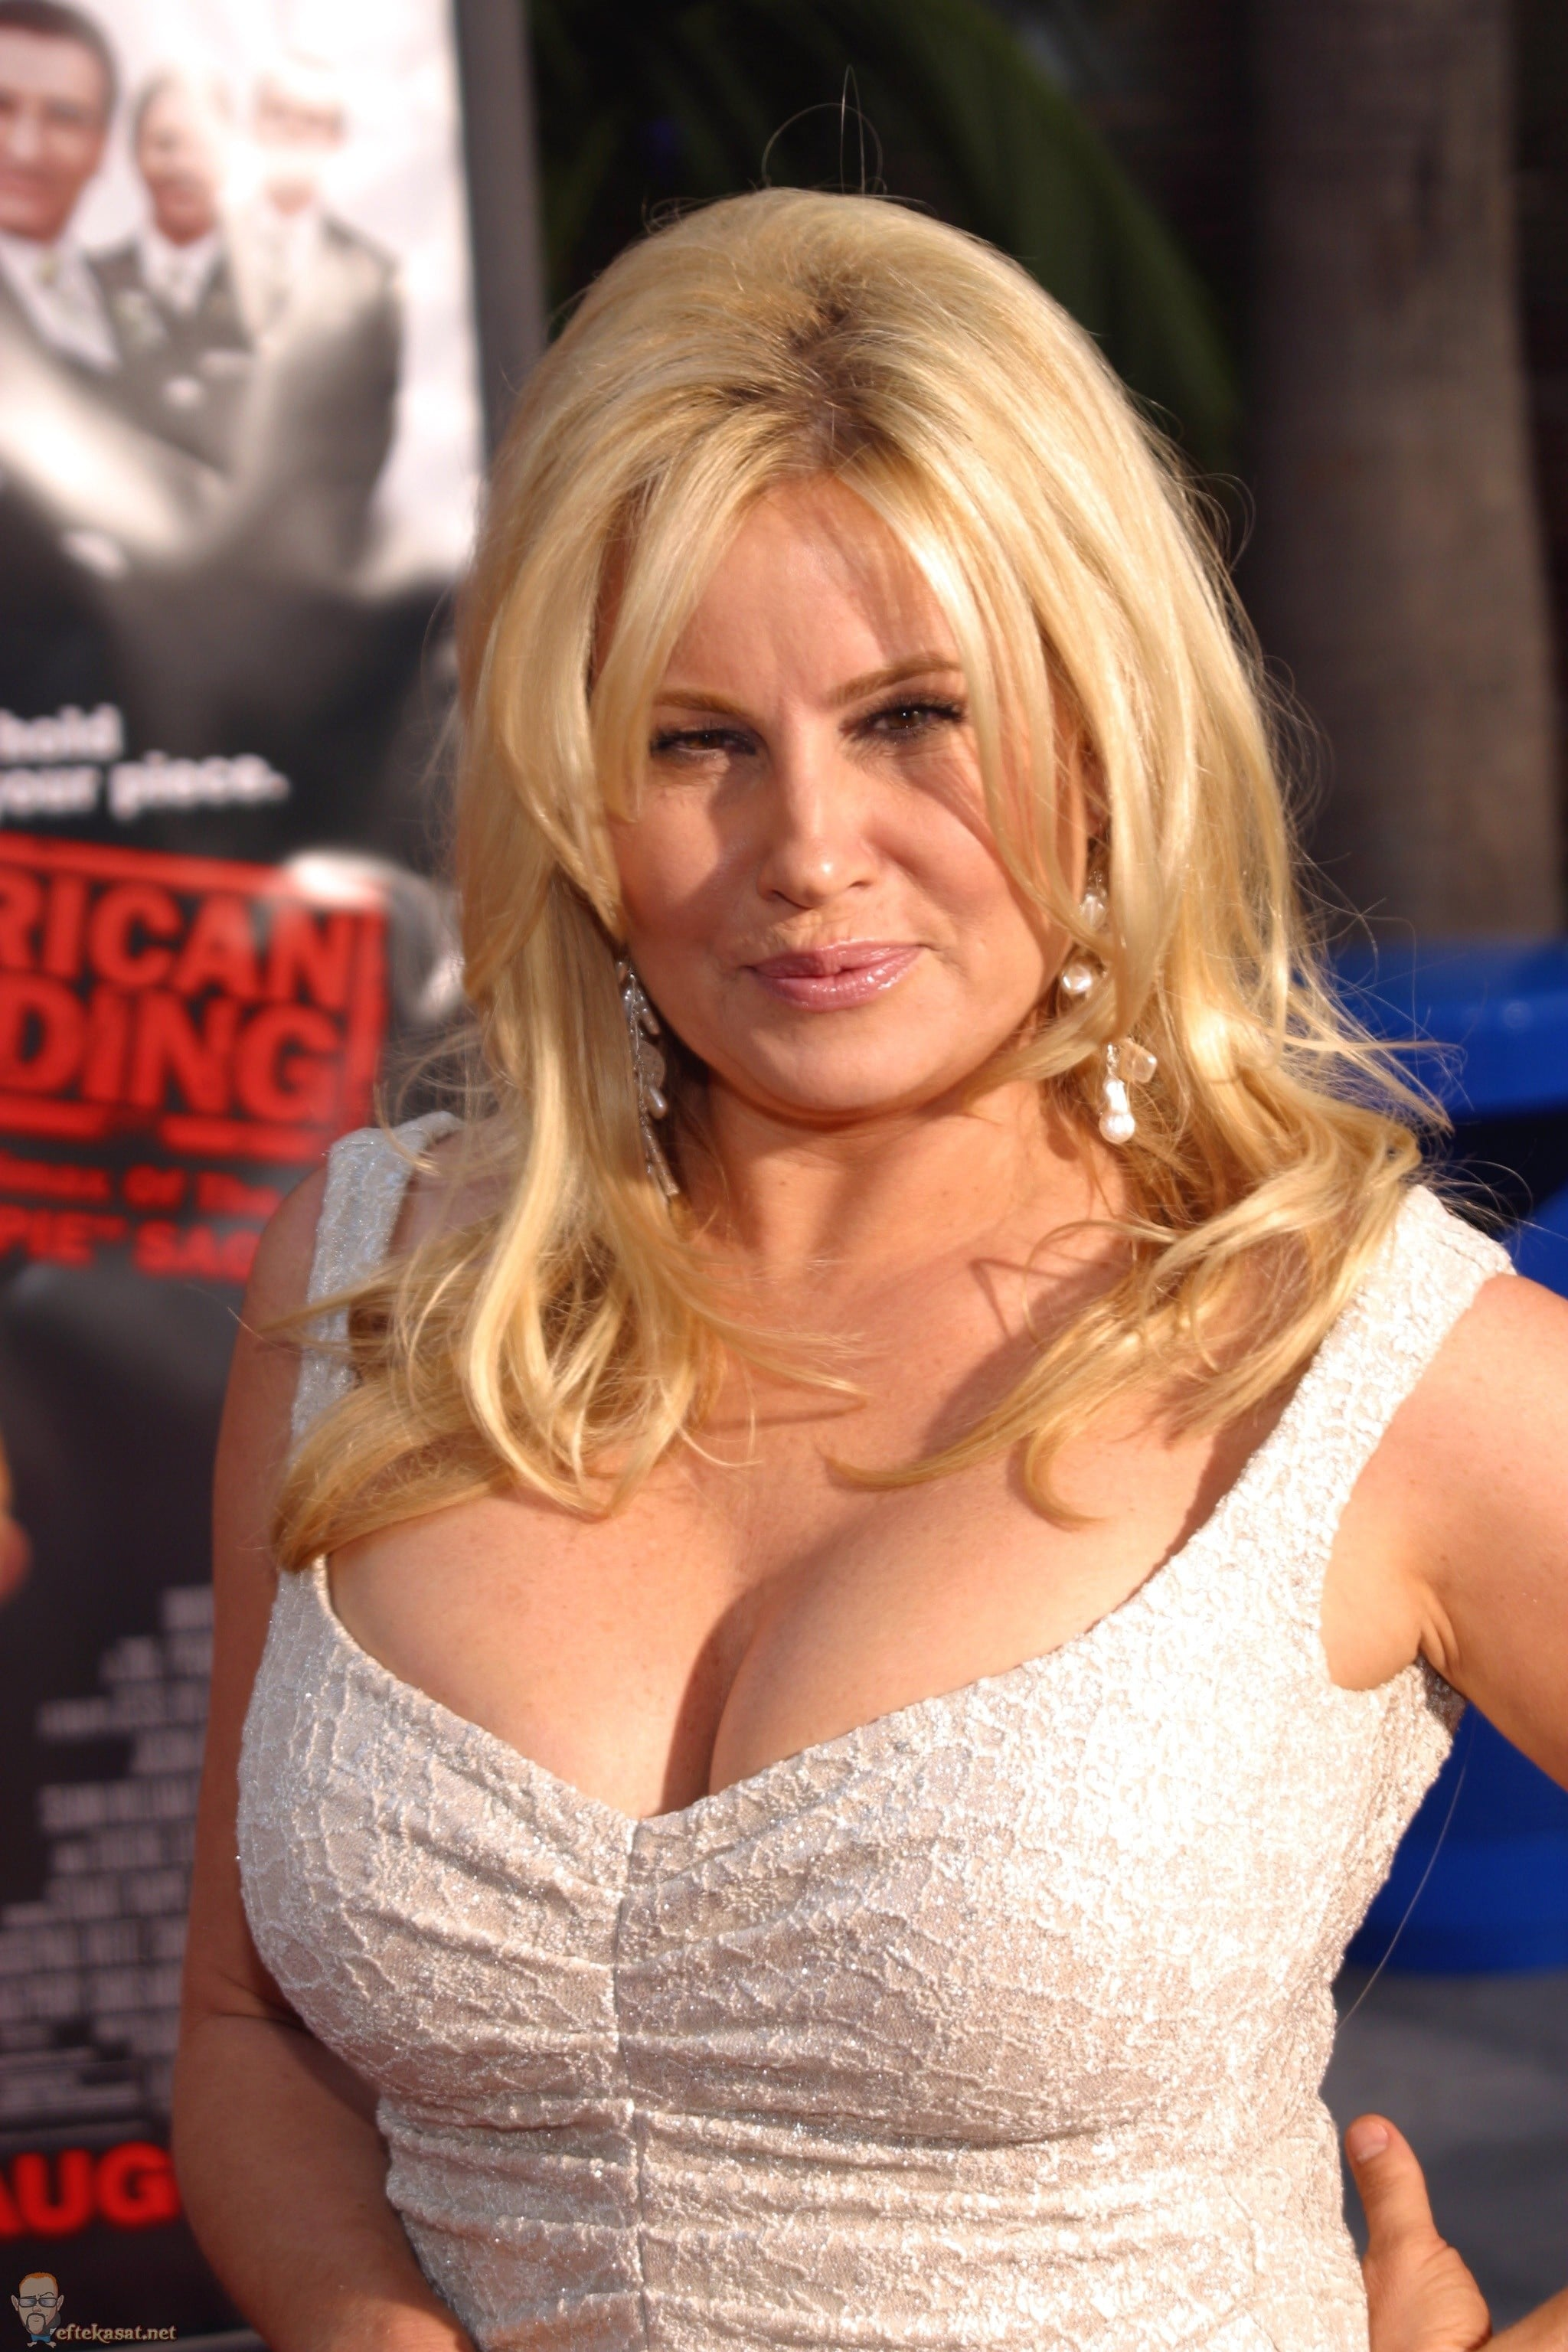 Jennifer Coolidge Xxx Cheap showing xxx images for jennifer coolidge xxx | www.fuckpix.club